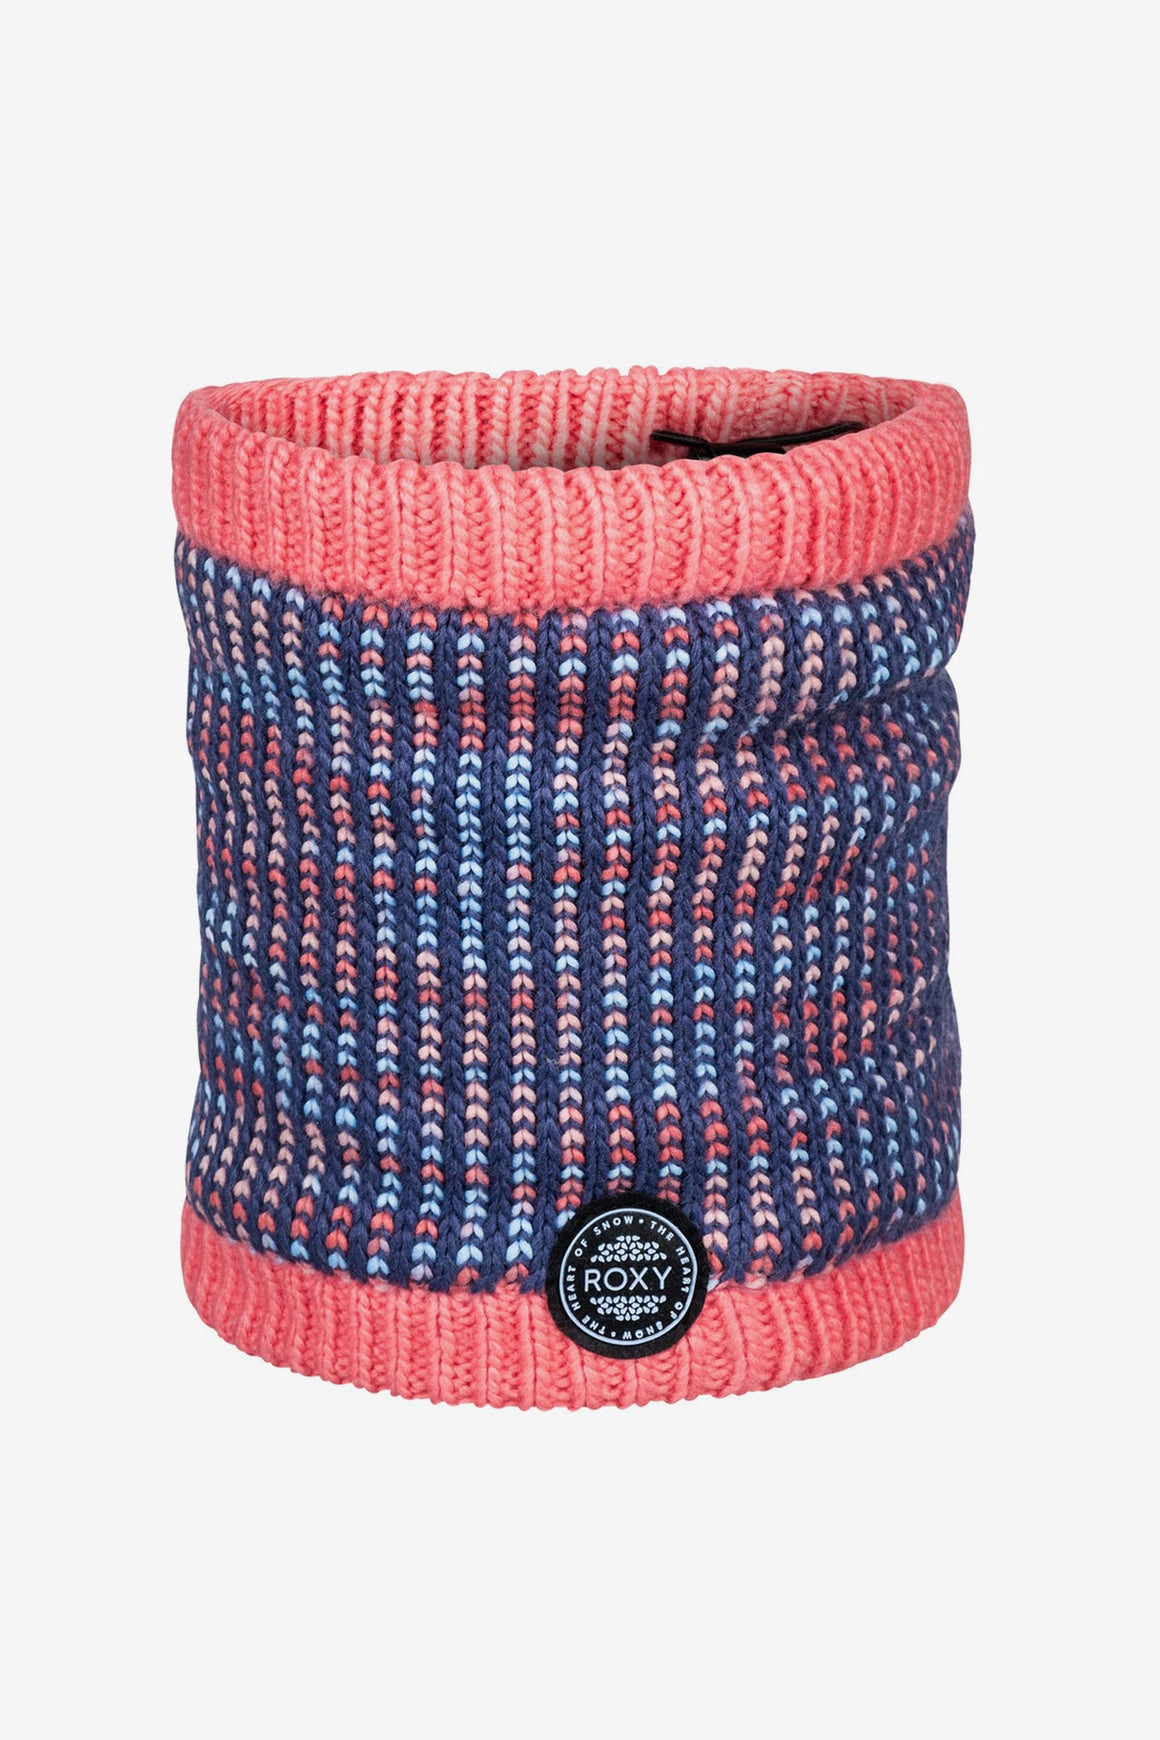 Roxy Snowflurry Neck Warmer - Crown Blue